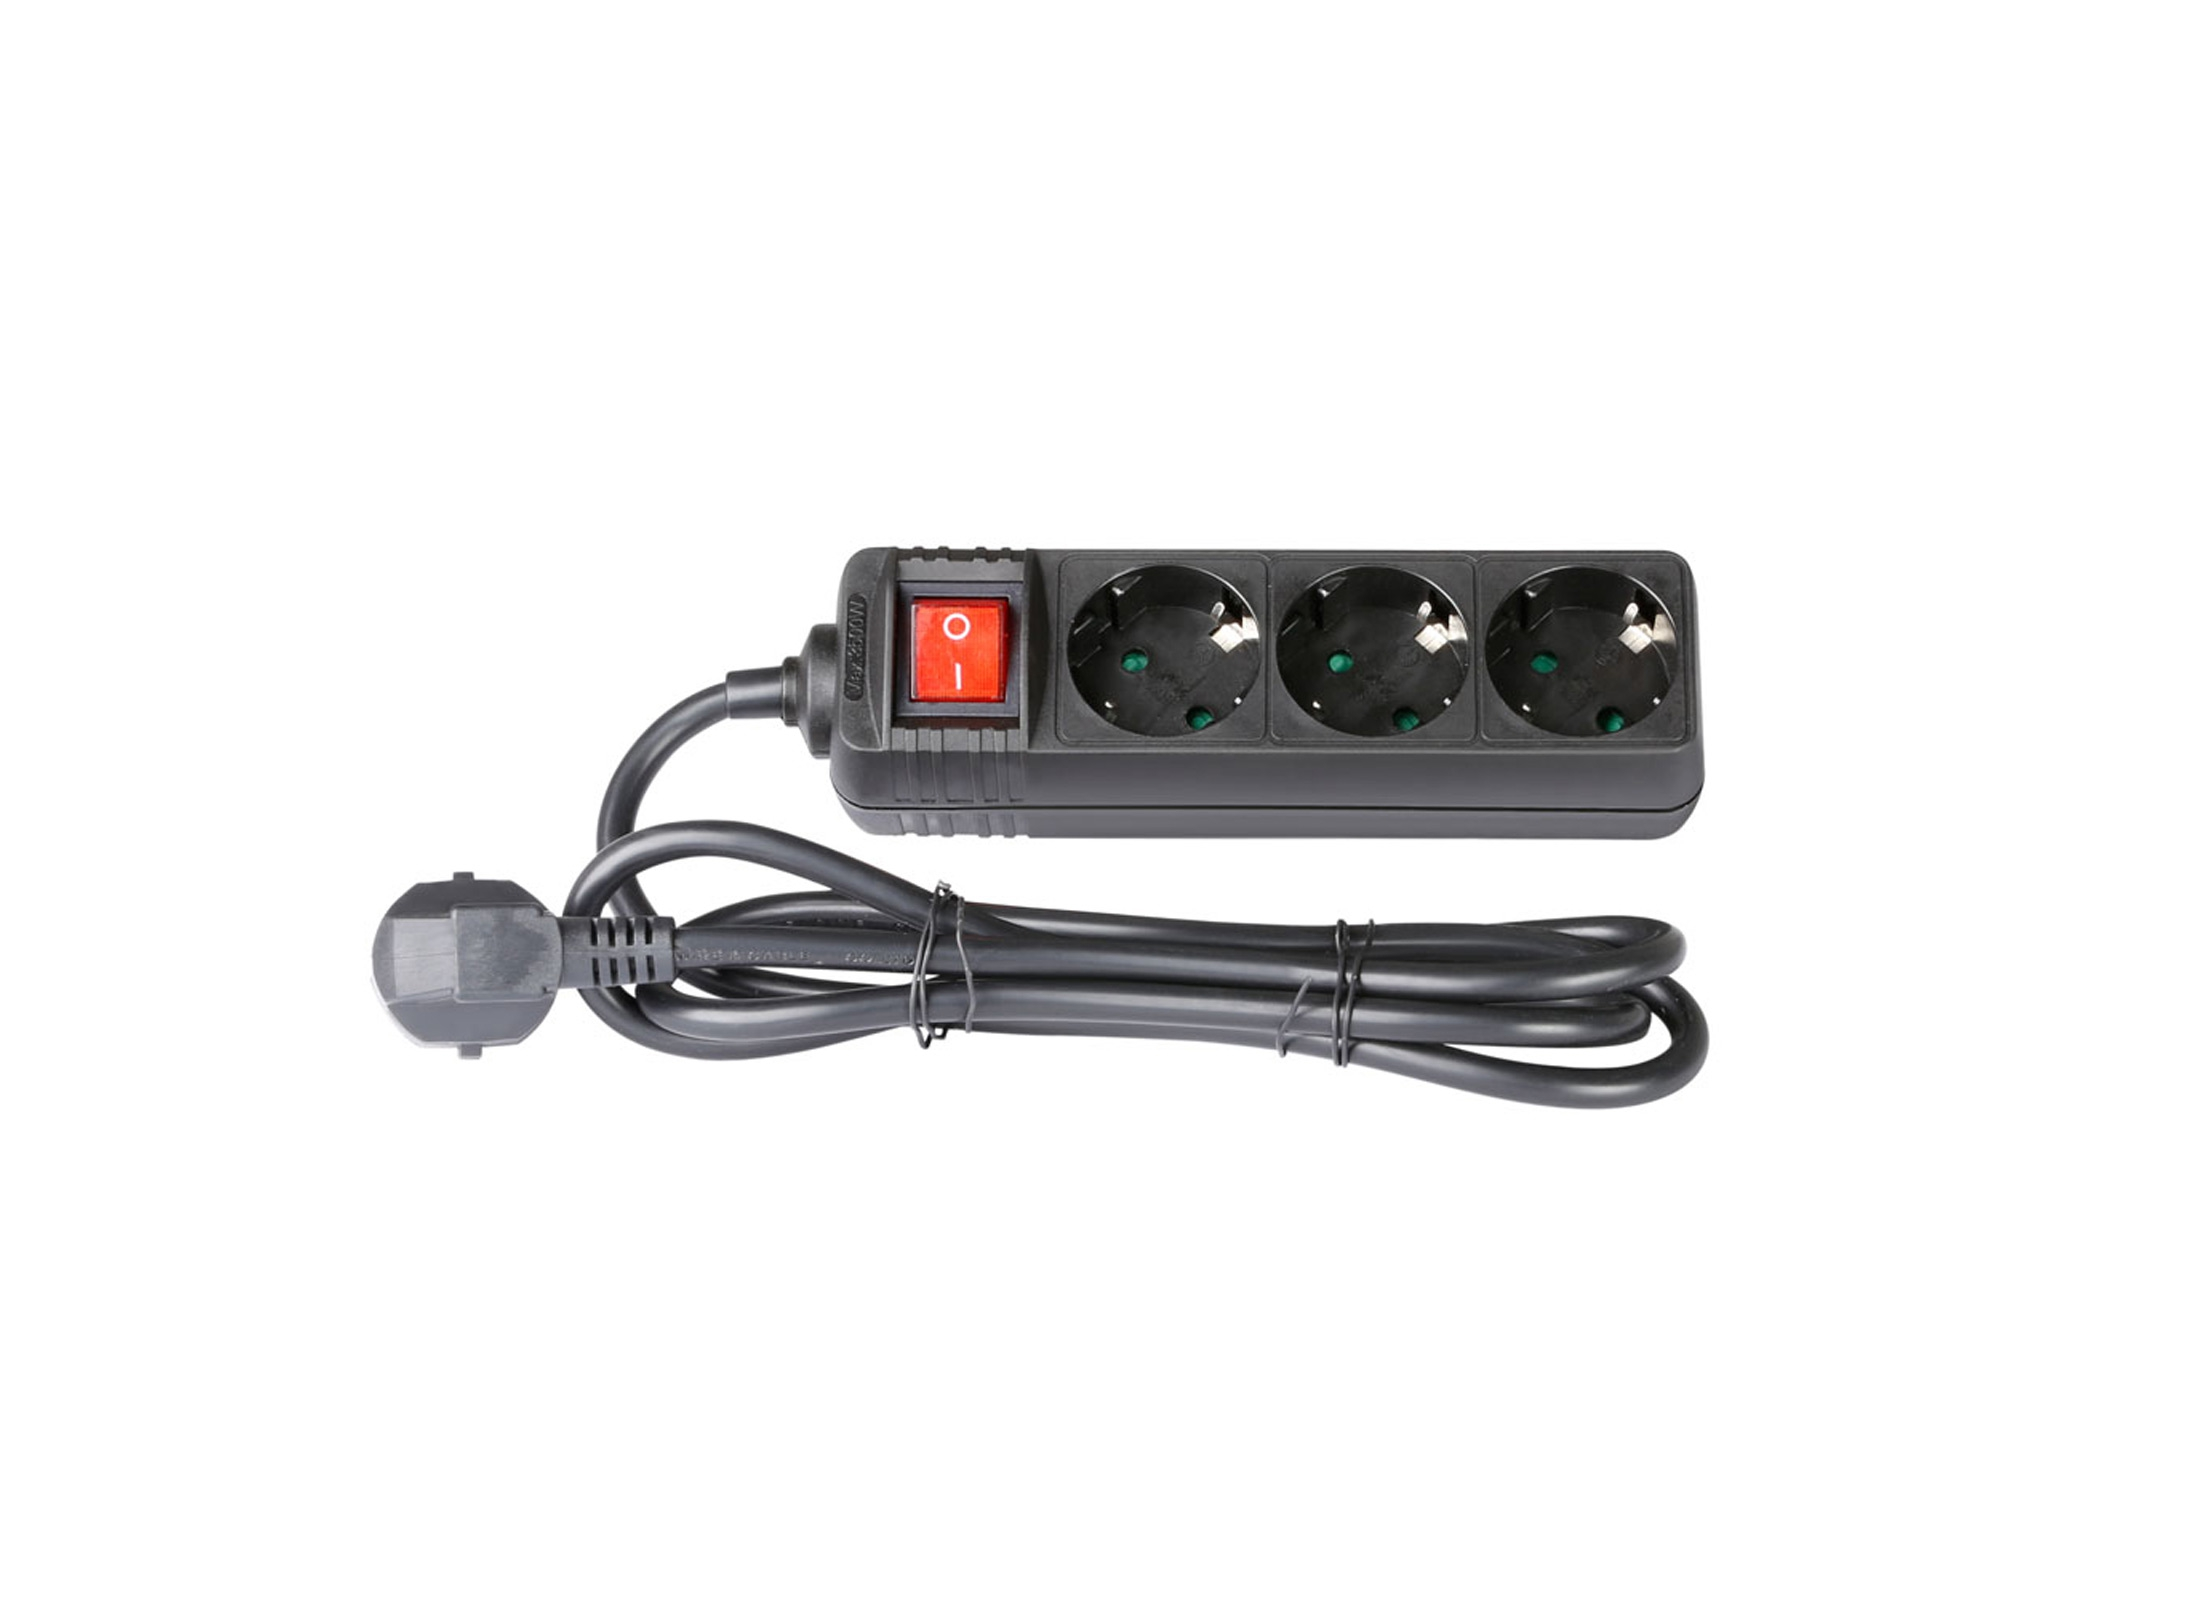 adam hall multi socket power strip with switch black online at low prices at huss light sound. Black Bedroom Furniture Sets. Home Design Ideas